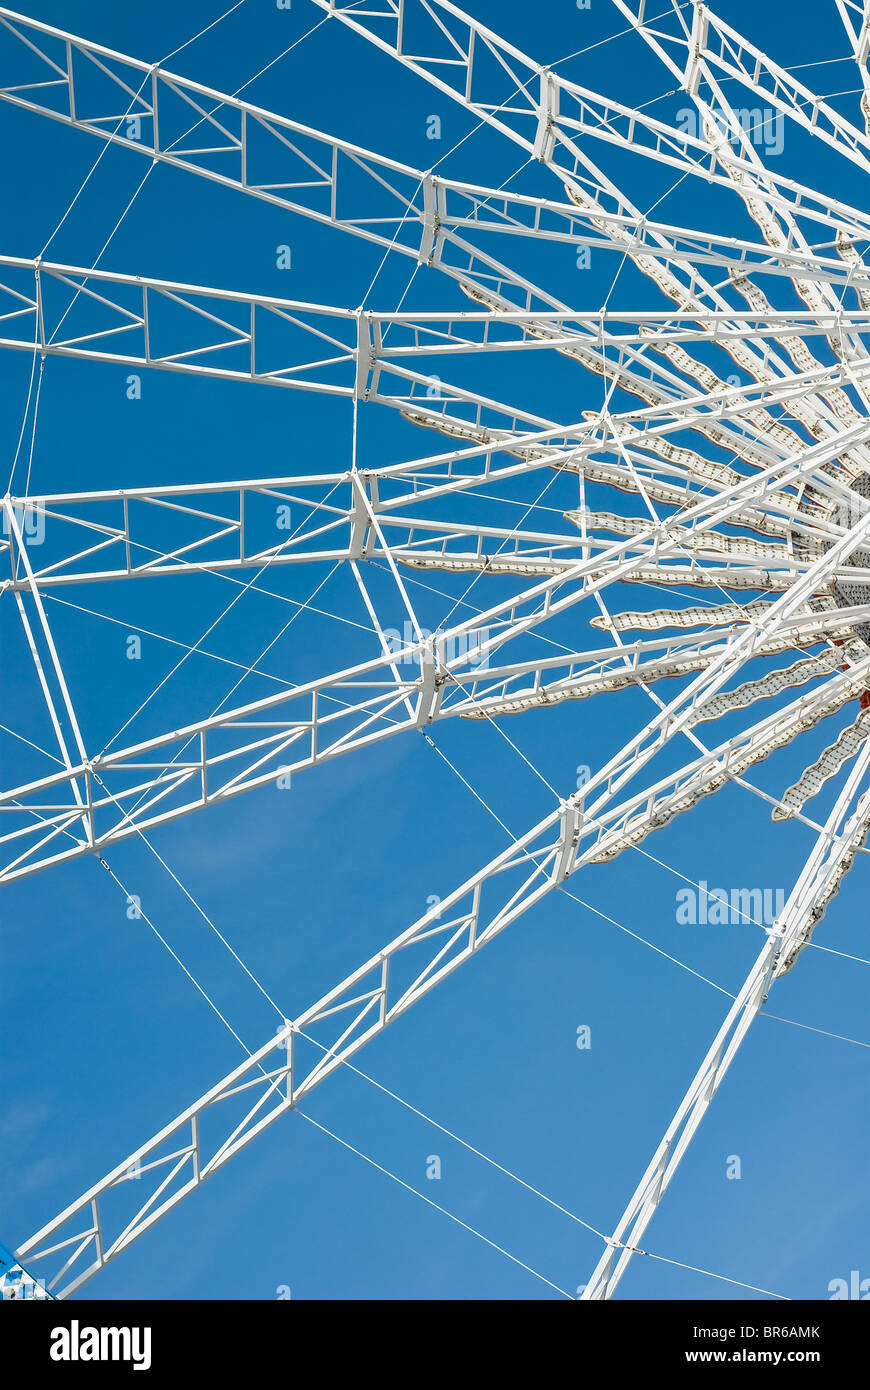 Grande Roue comme élément de design pattern Abstract Photo Stock